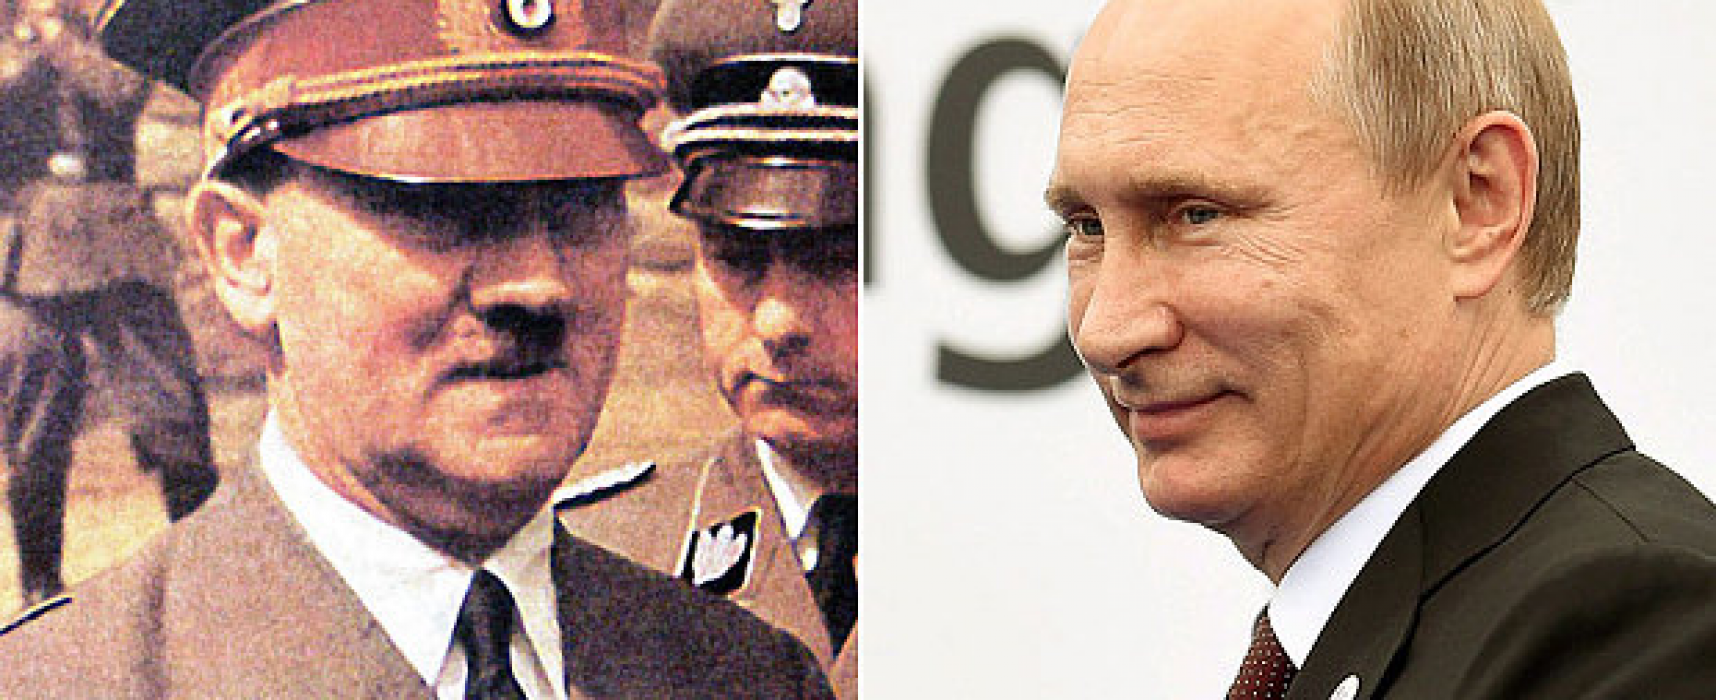 Vladimir Putin says there was nothing wrong with Soviet Union's pact with Adolf Hitler's Nazi Germany